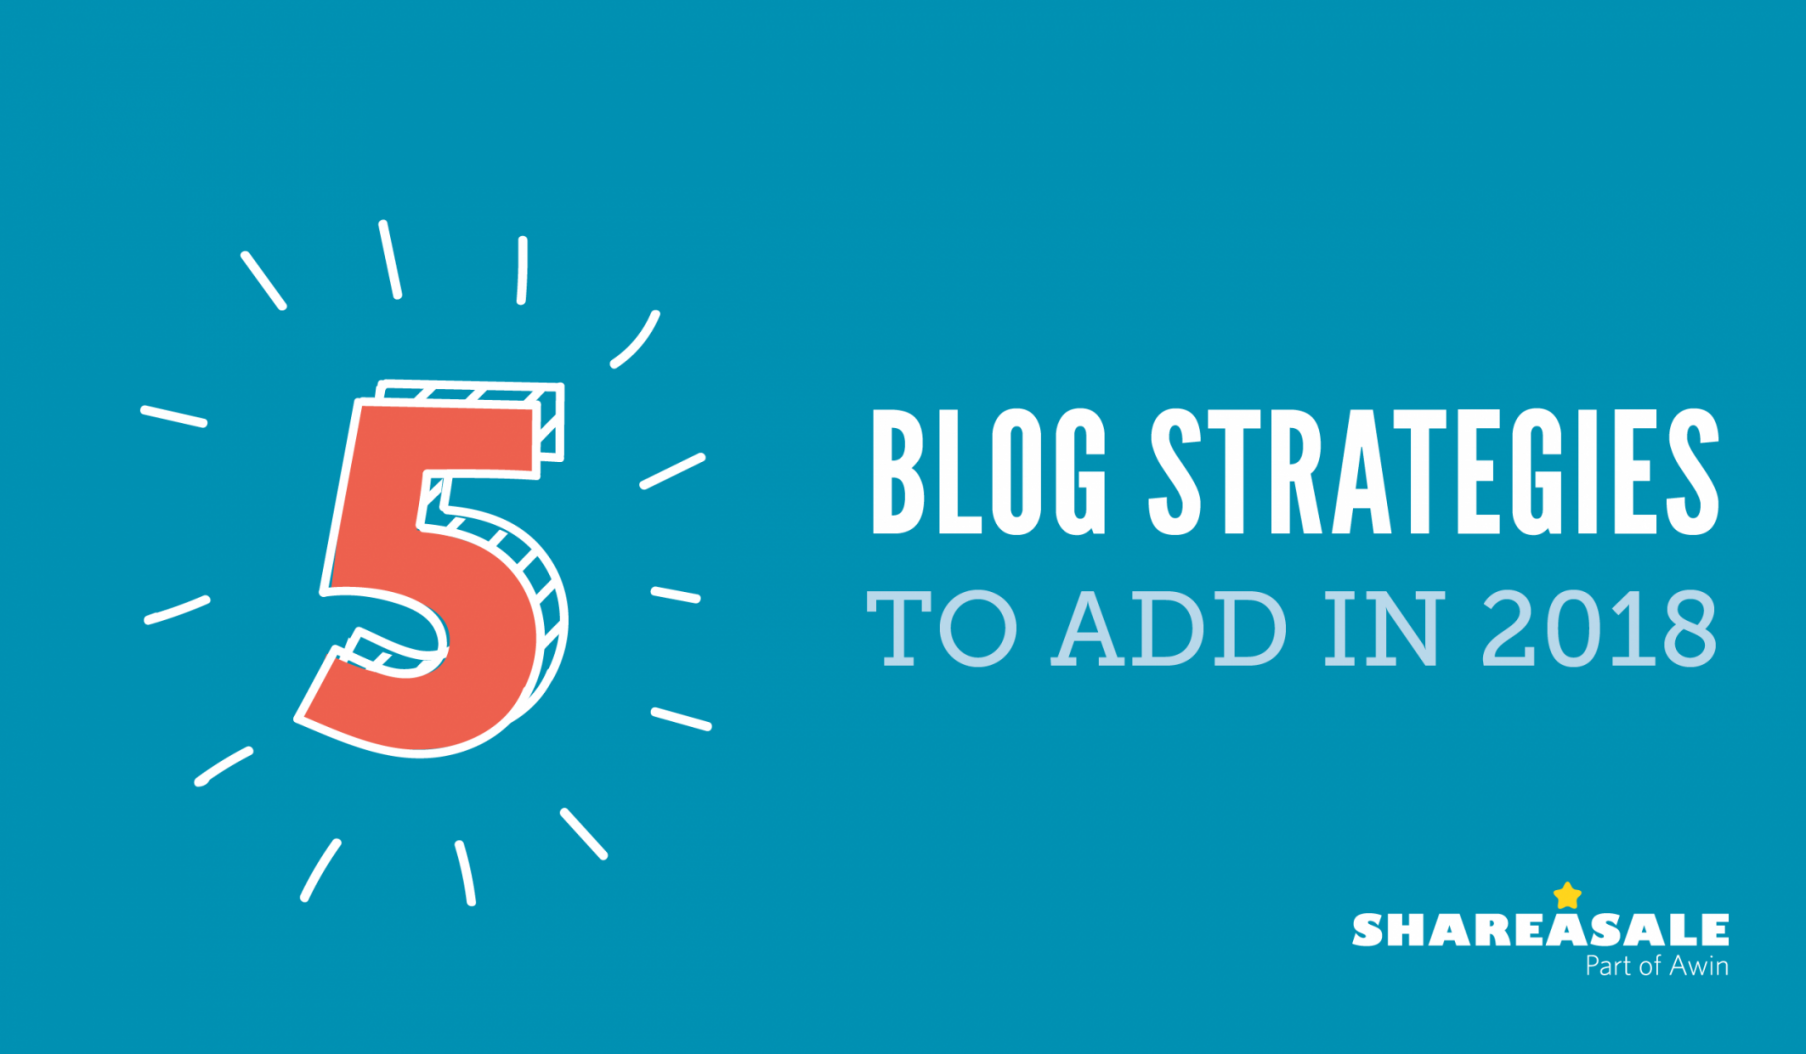 5 Blog Strategies to Add in 2018